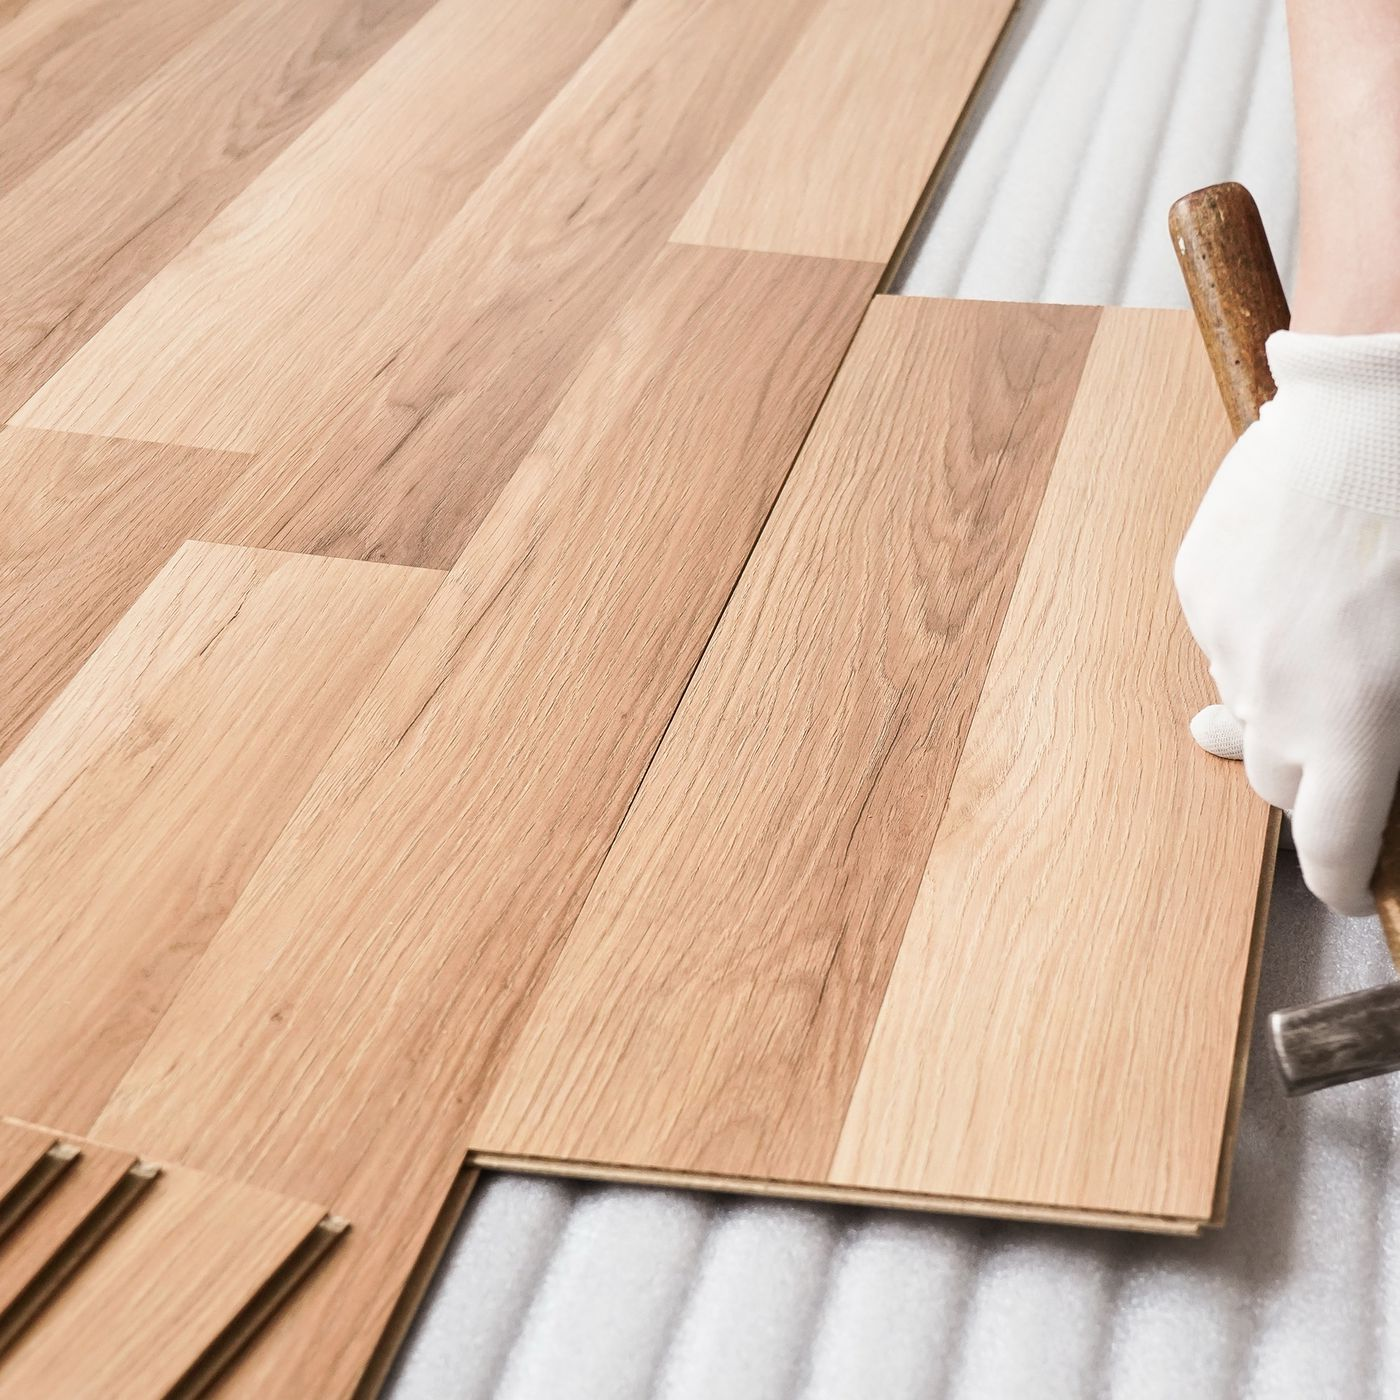 Ll Flooring Review 2021 This Old House